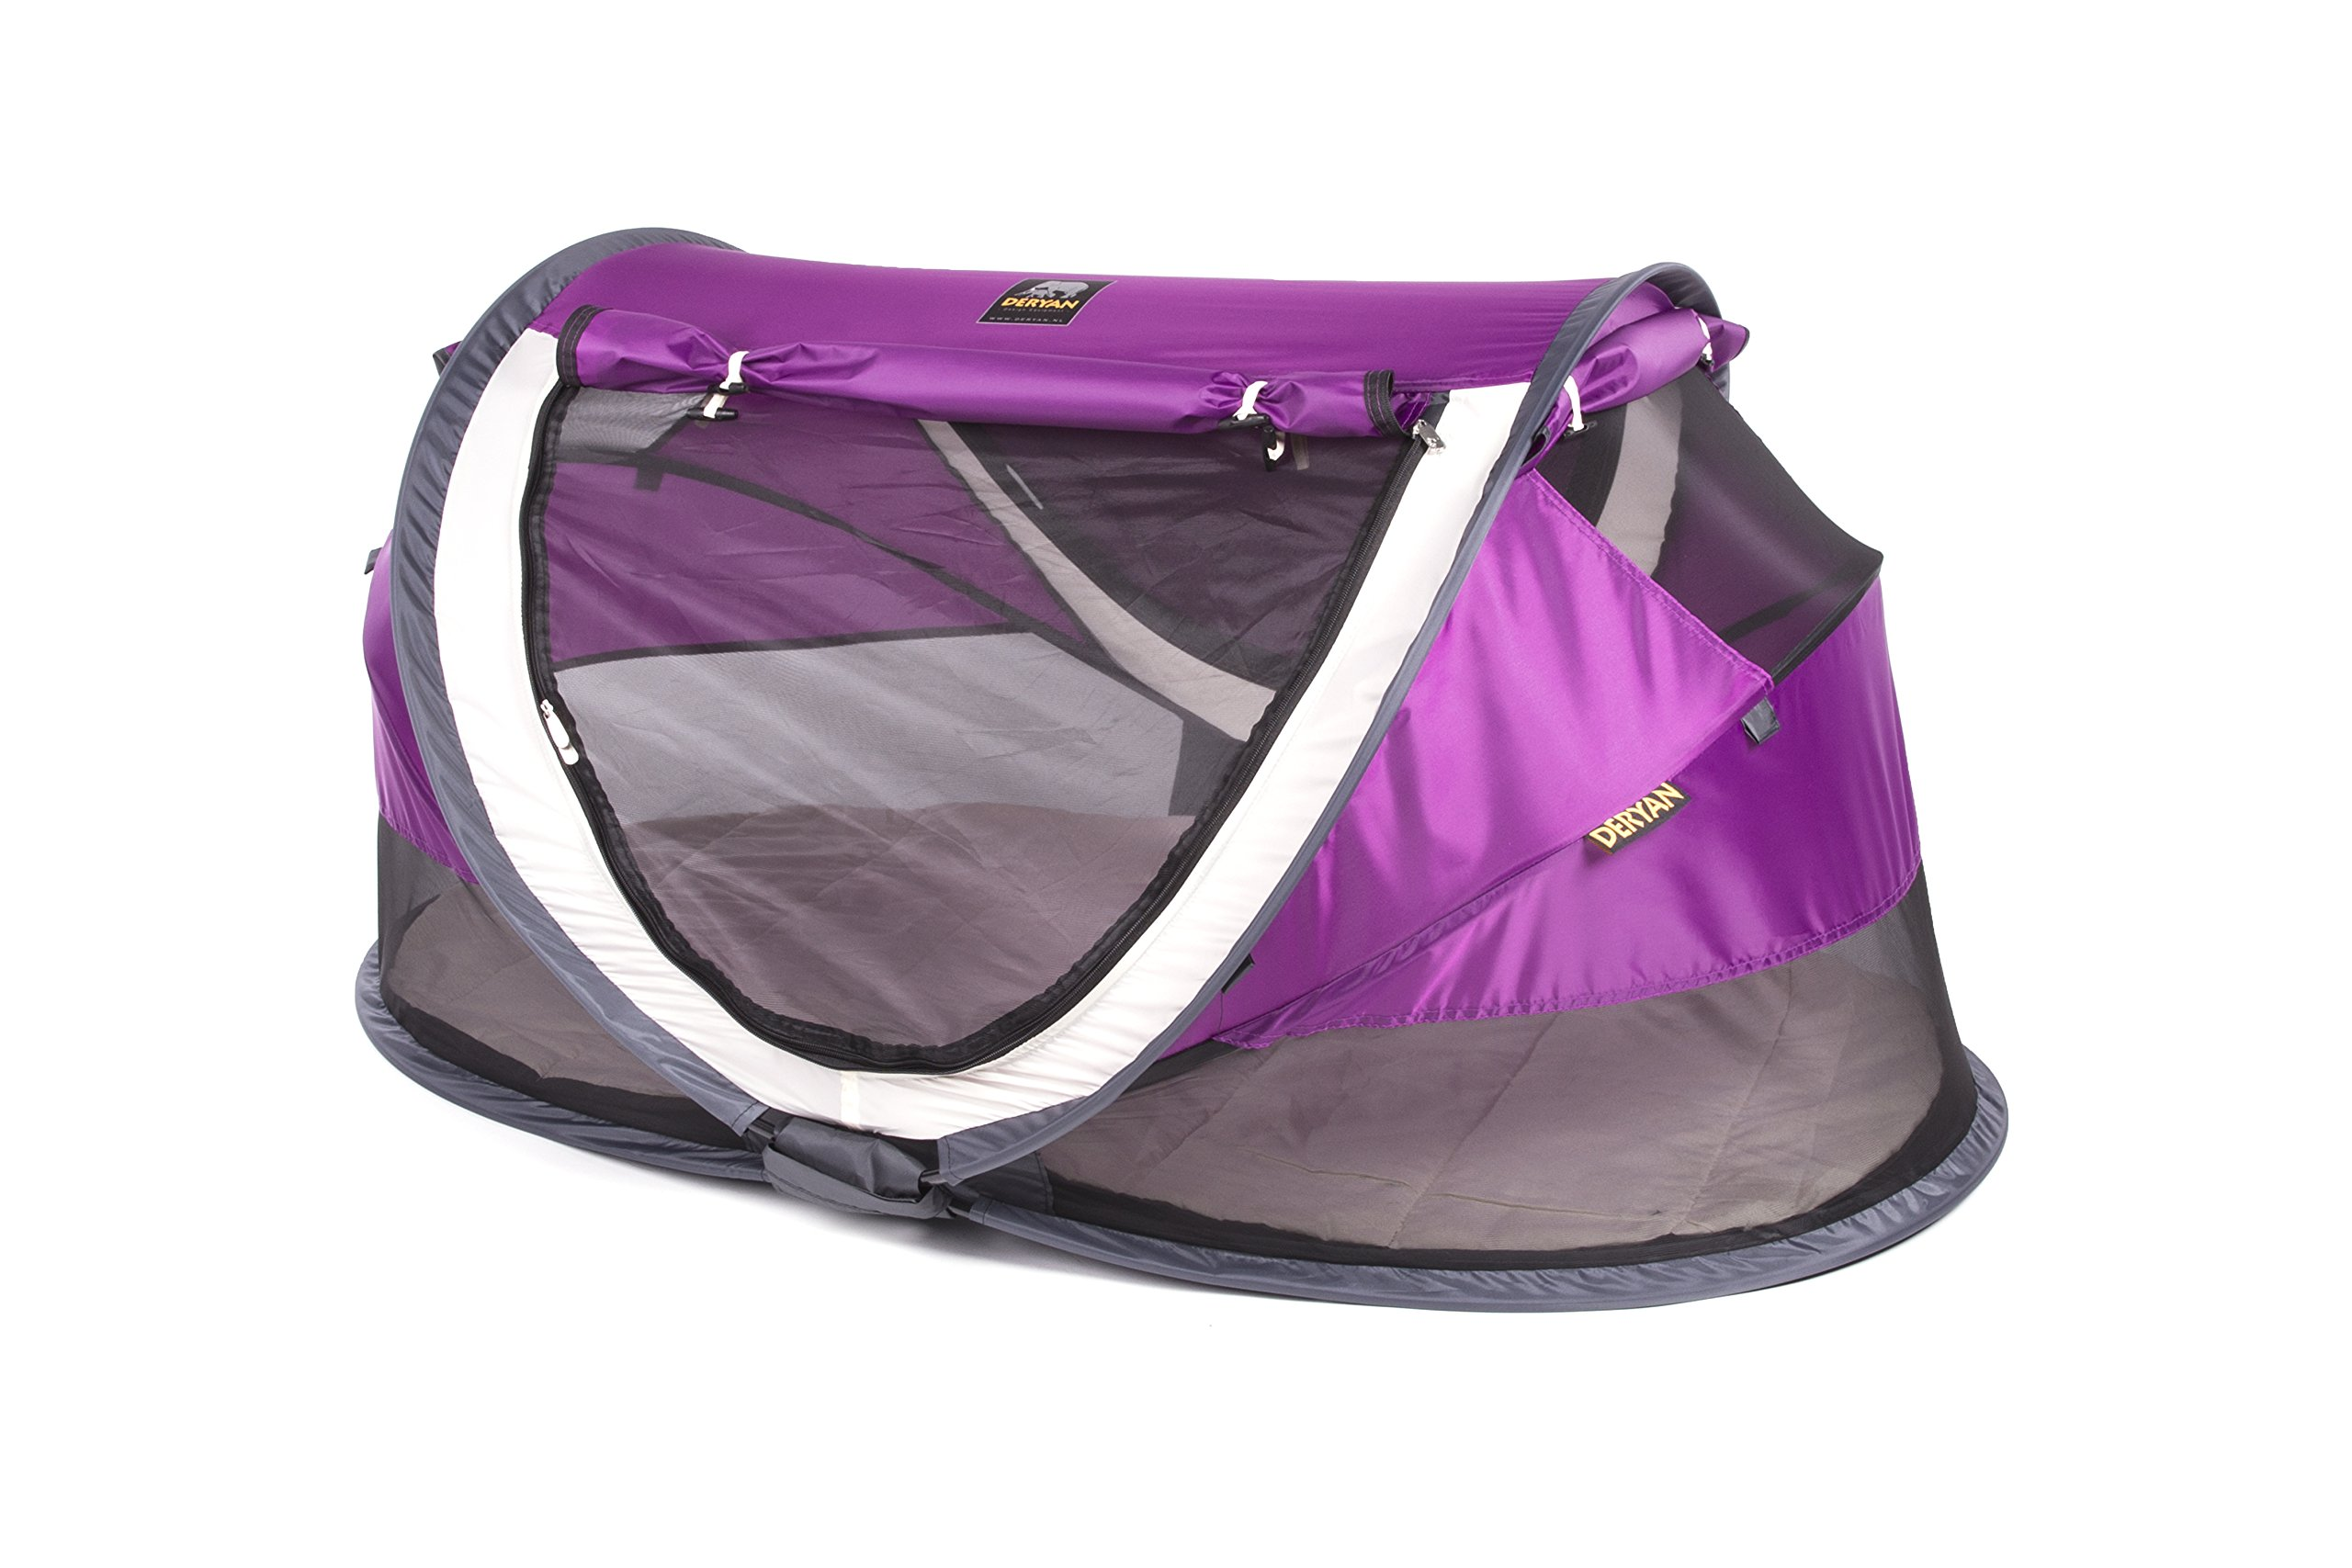 Travel Cot Peuter Luxe (Purple) Deryan 50% UV Protection and flame retardant fabric Setup in 2 seconds and a anti-musquito net  4